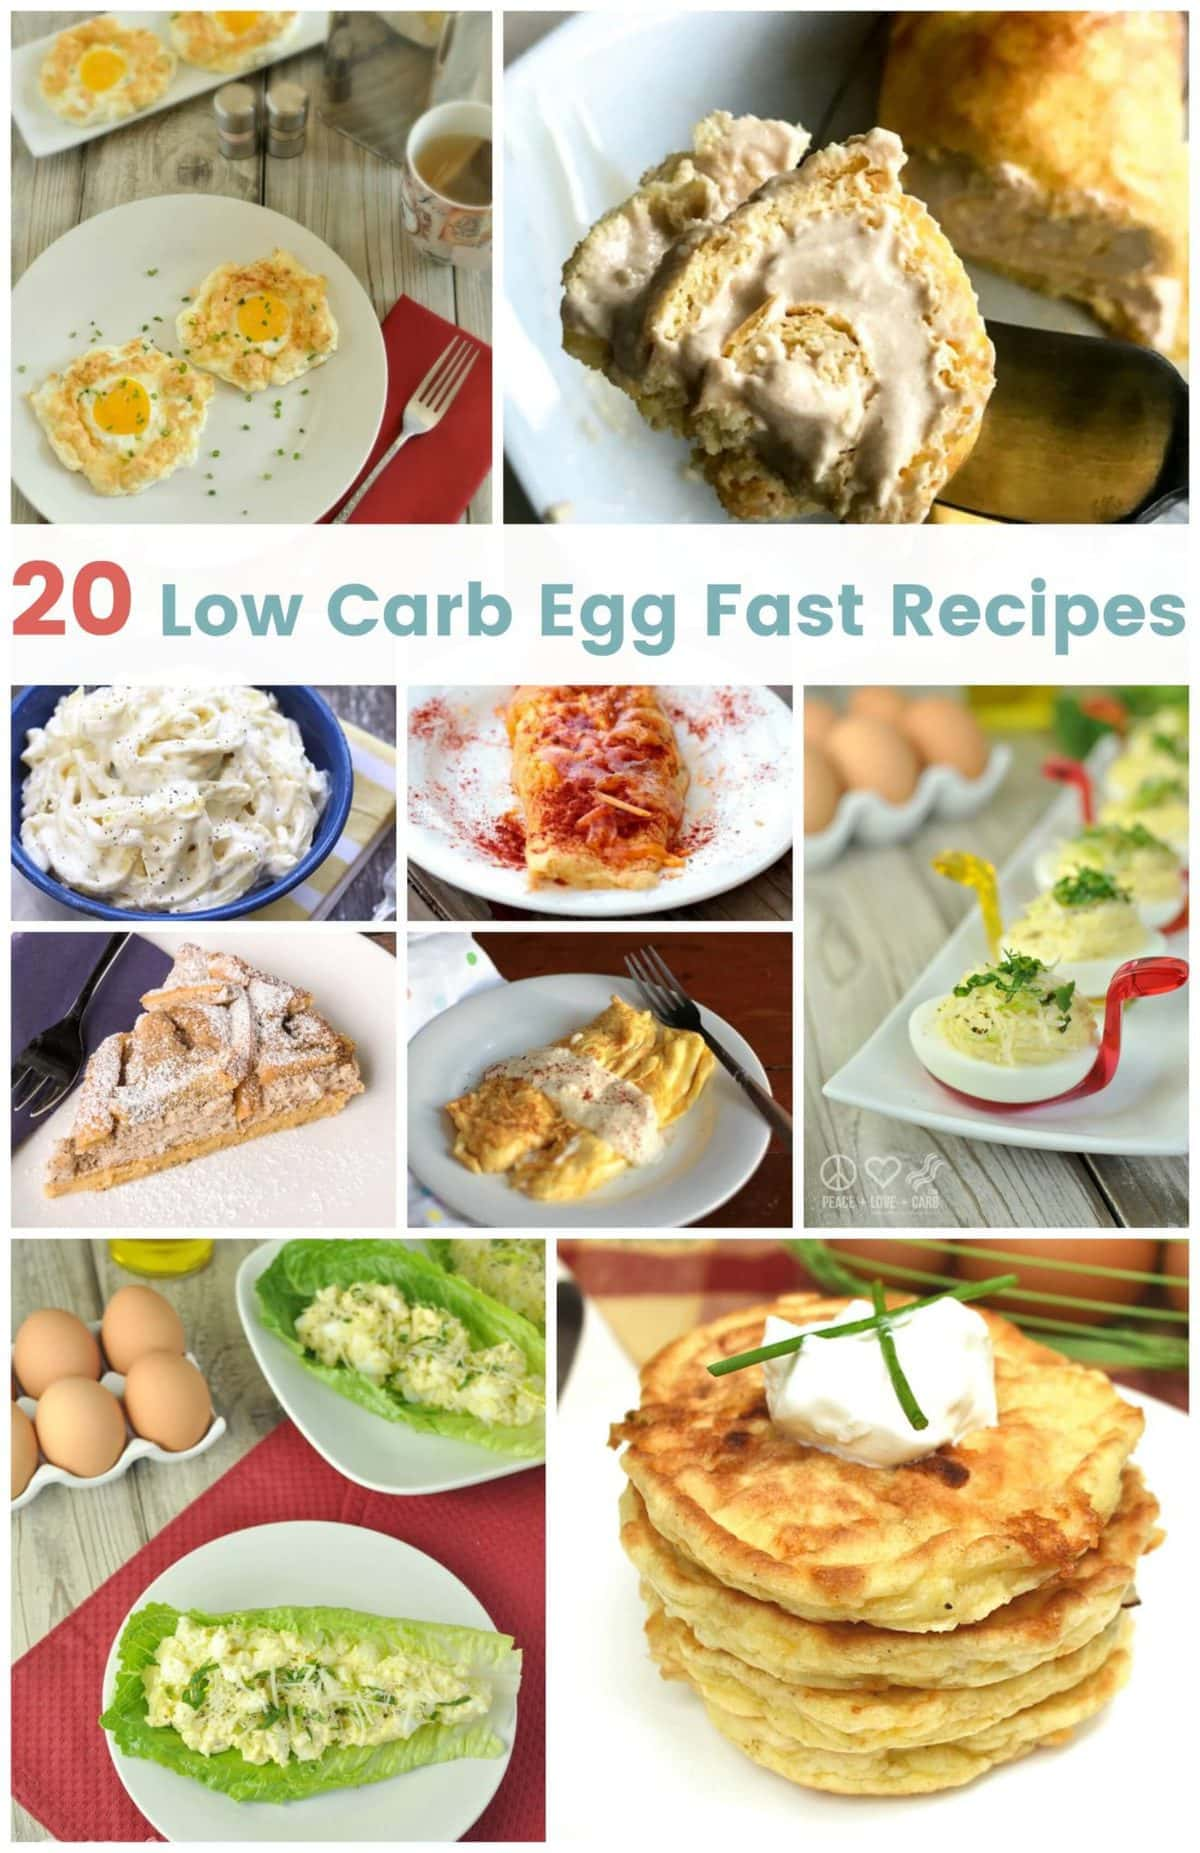 20 Egg Fast Recipes | Peace Love and Low Carb